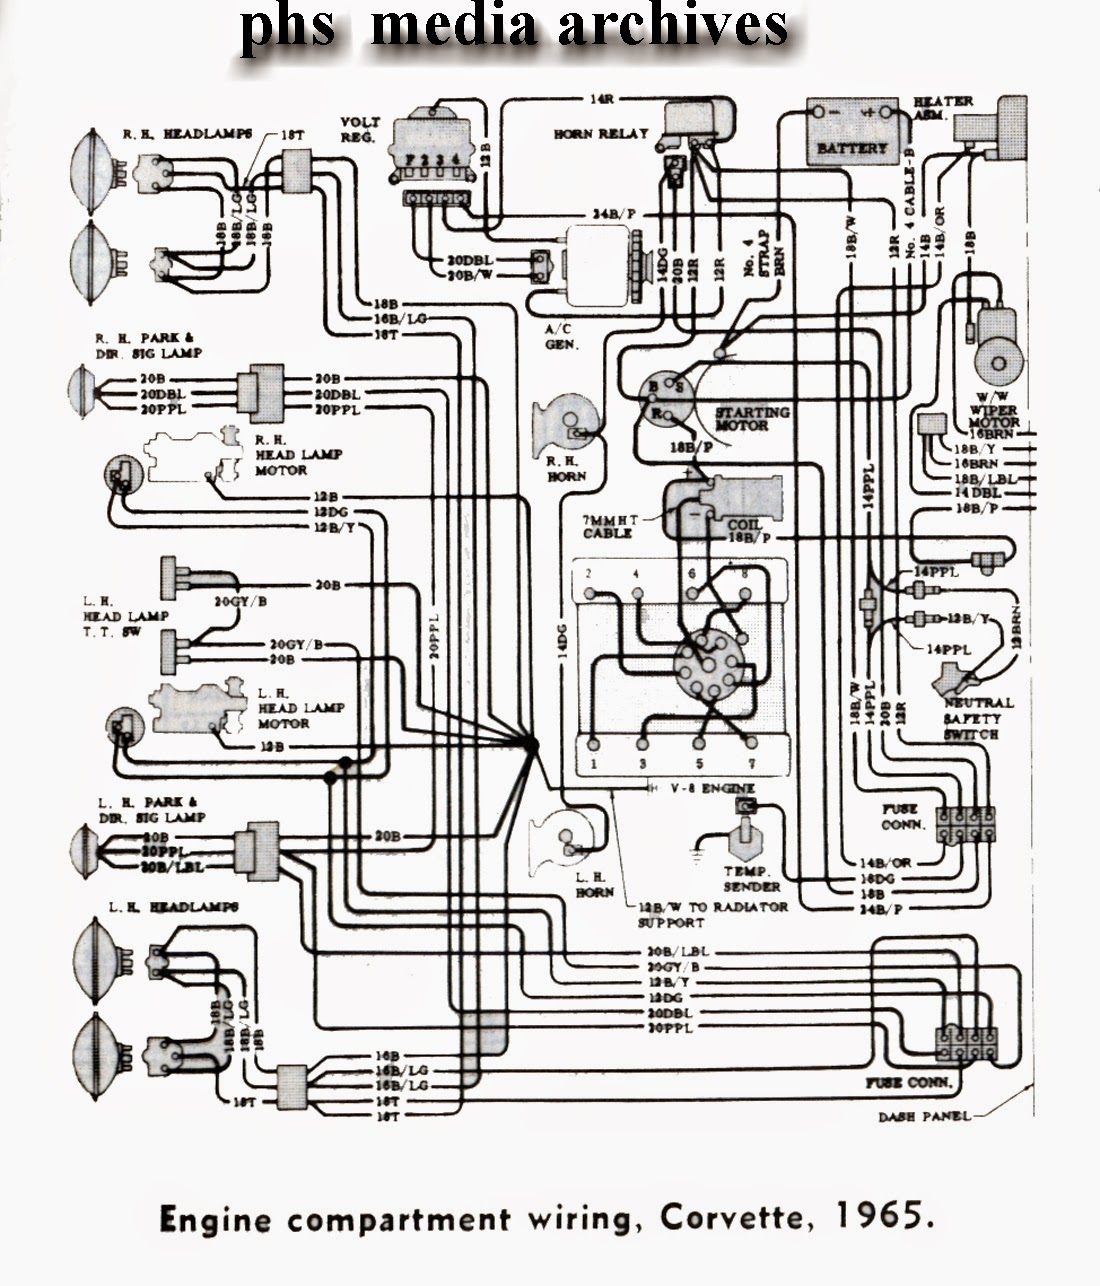 Fuse Box Wiring Diagram 76 Corvette Opinions About Wiring Diagram \u2022  1976 Chevy C60 Wiring Diagram 1976 Chevy Corvette Wiring Diagram